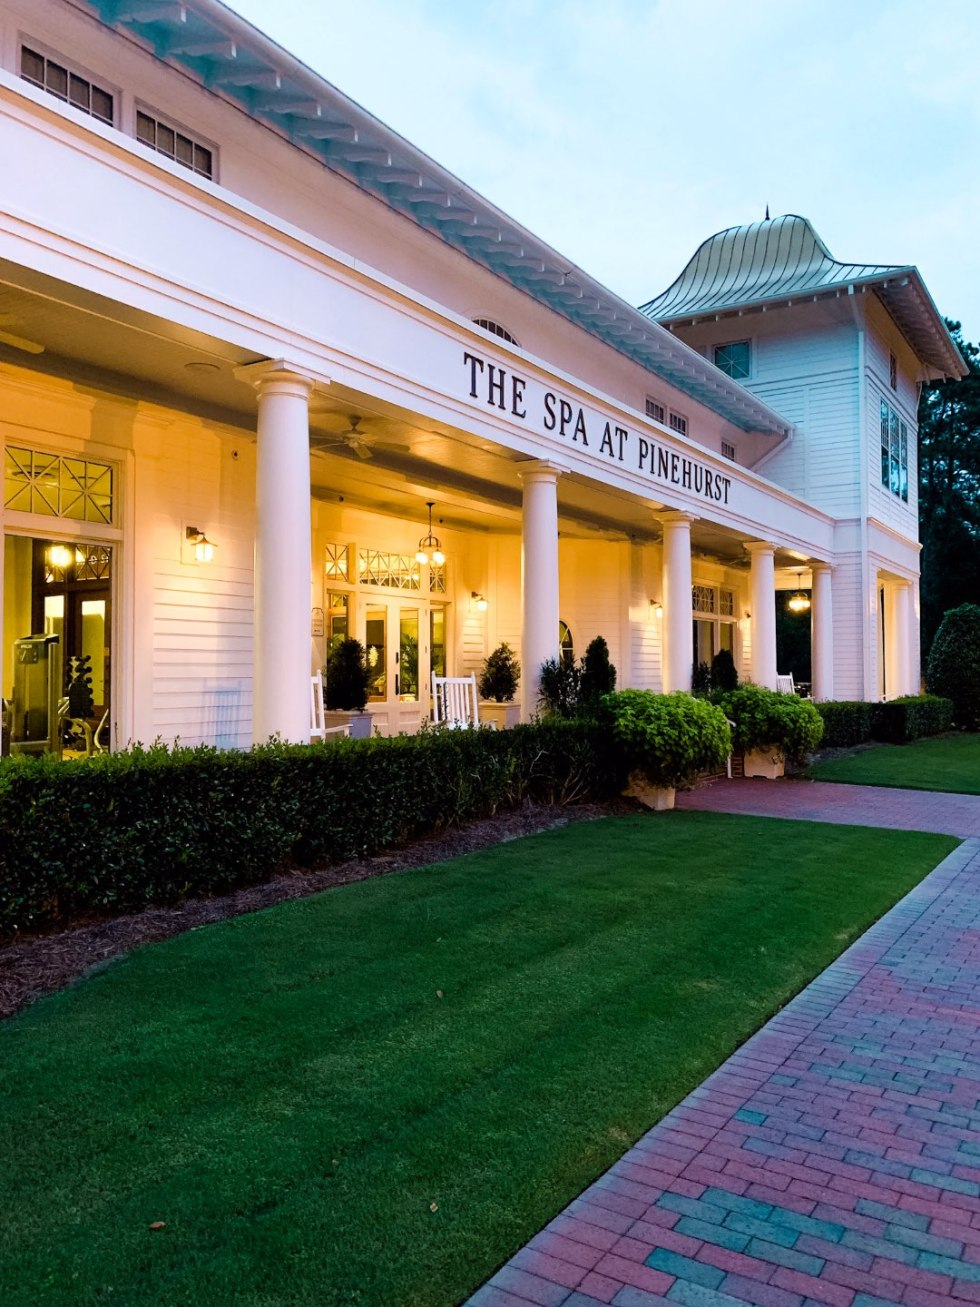 The Best things to do in Pinehurst NC , a travel guide featured by top NC blog, I'm Fixin' To | Top 10 Best Things to Do in Pinehurst NC: a Complete Travel Guide - I'm Fixin' To - @mbg0112